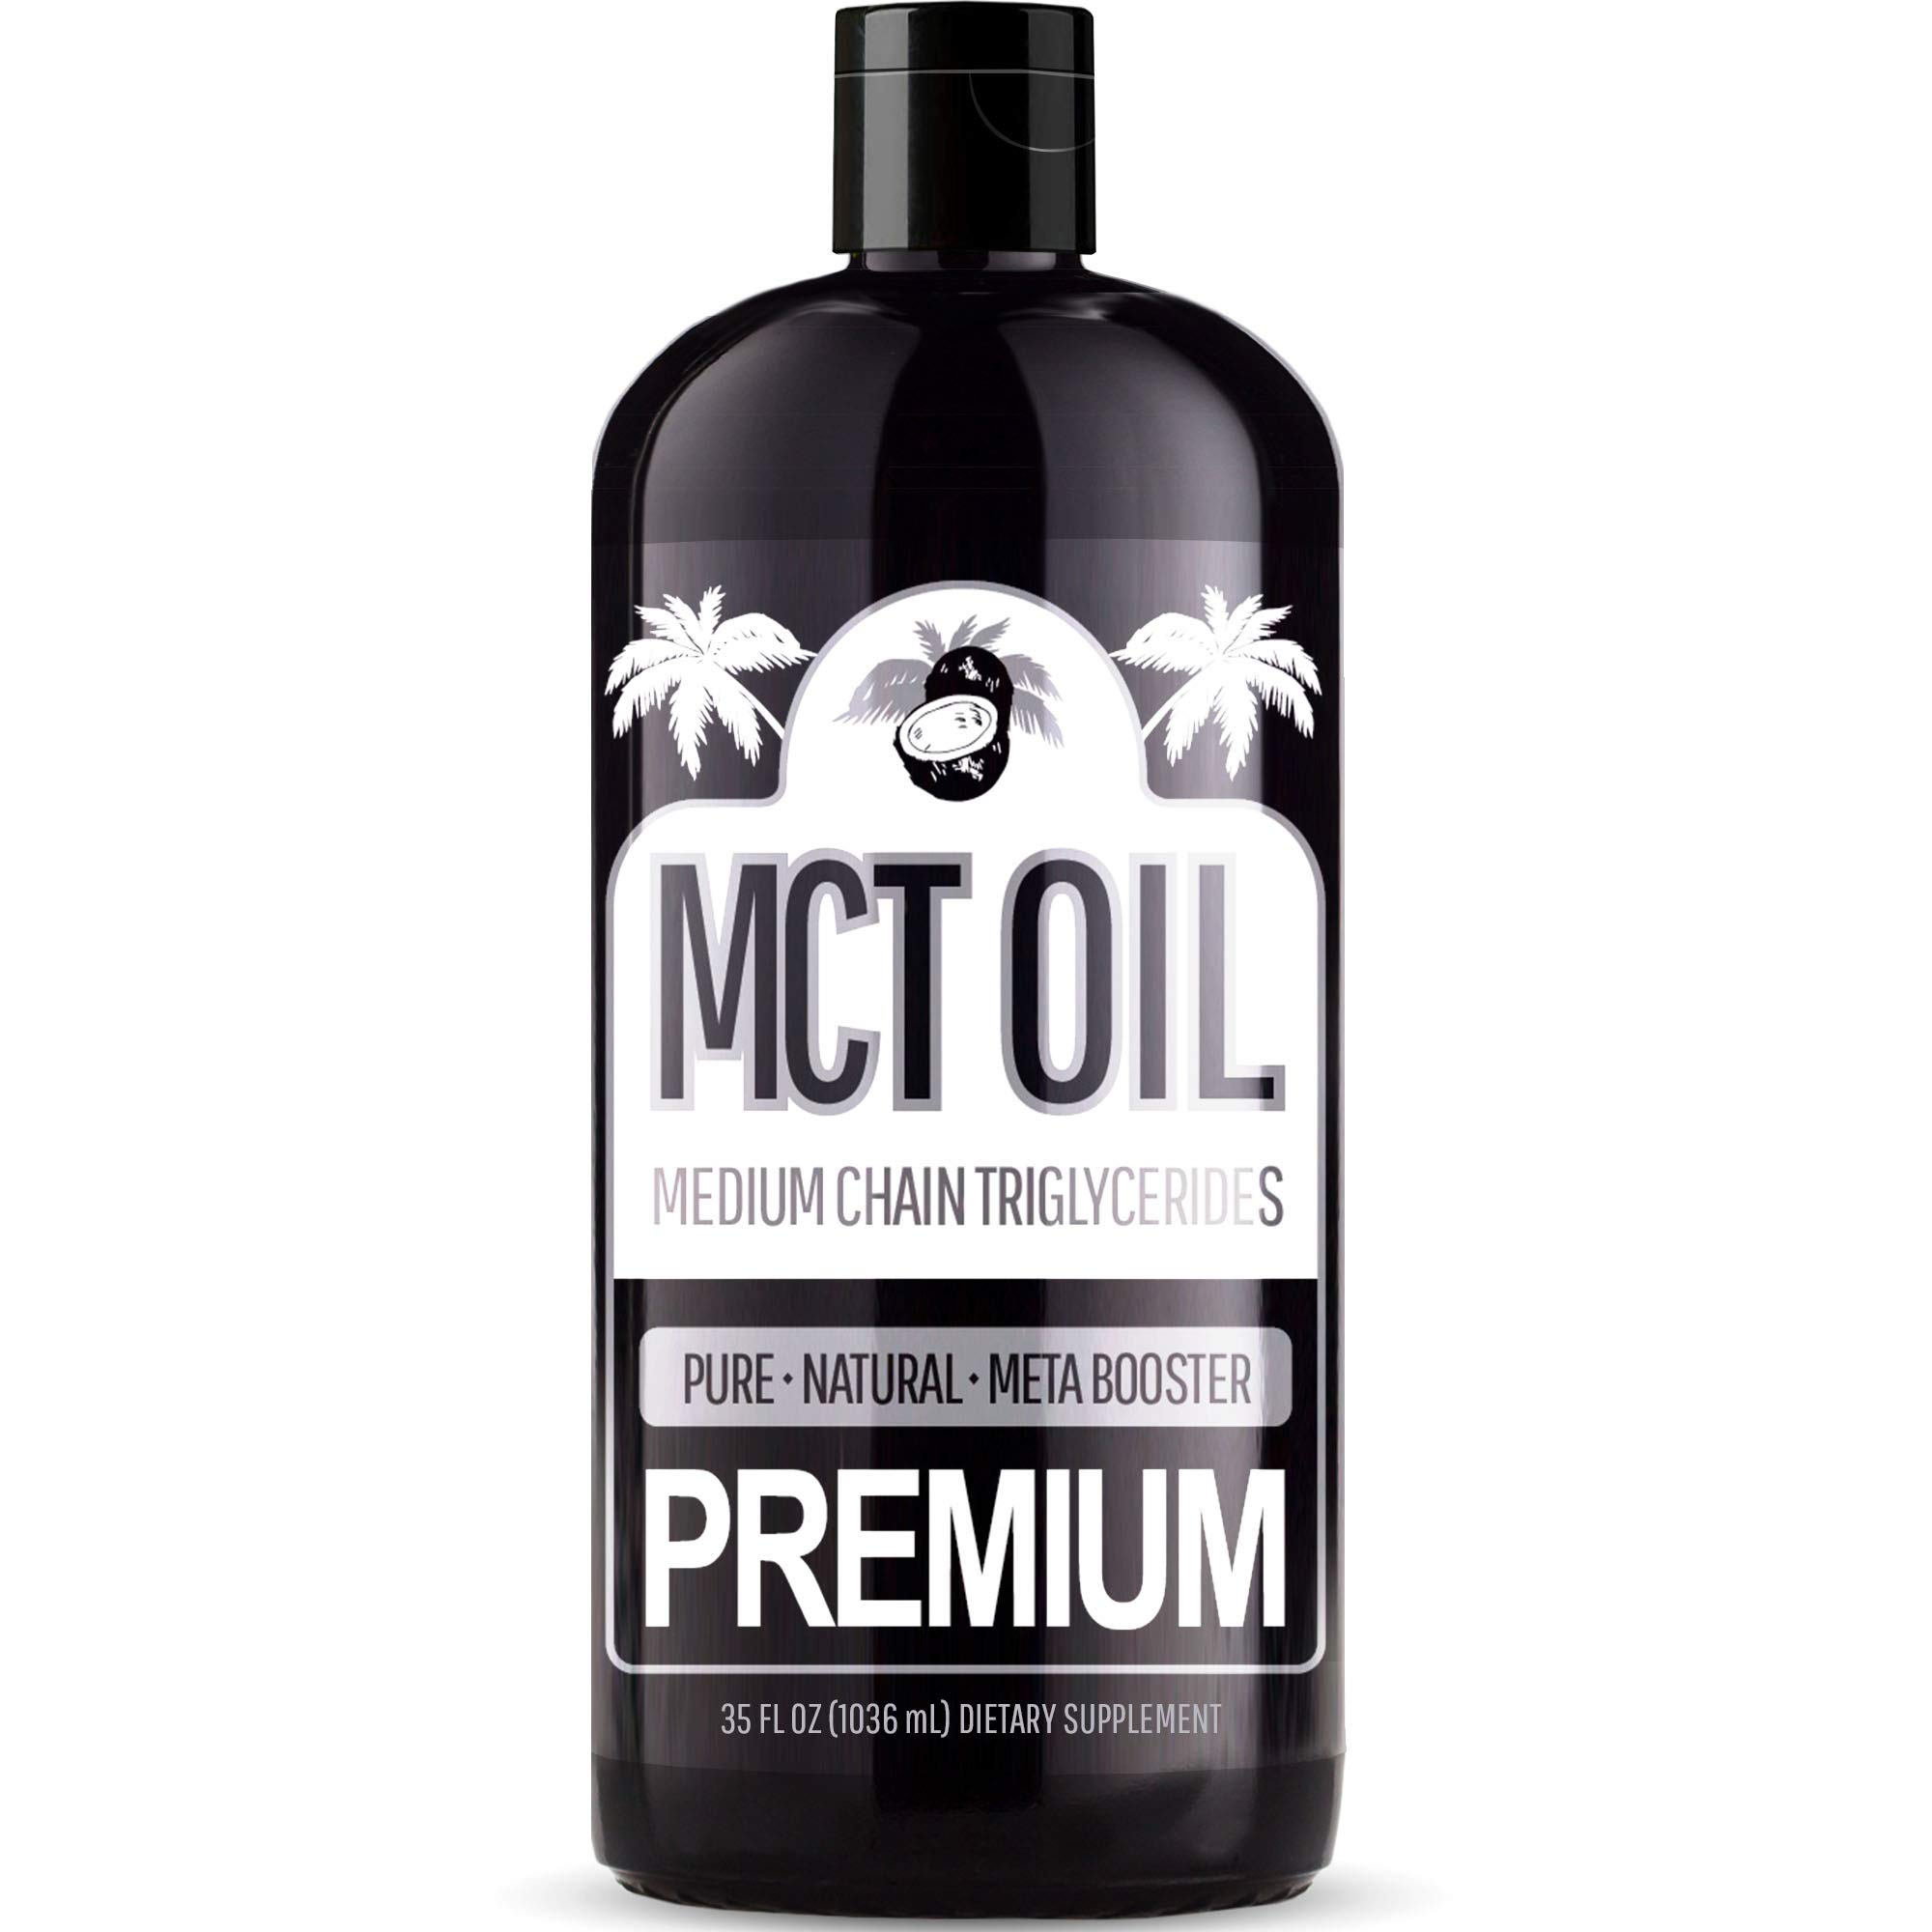 Premium MCT Oil - with C8 and C10 Brain Fuel - Derived Only From Coconuts - Keto & Paleo Diet Weight Loss Approved - Perfect Adding to Coffee, Salad Dressing, Tea, Shakes, Drink, and More! 35oz Bottle by Sun Essential Oils